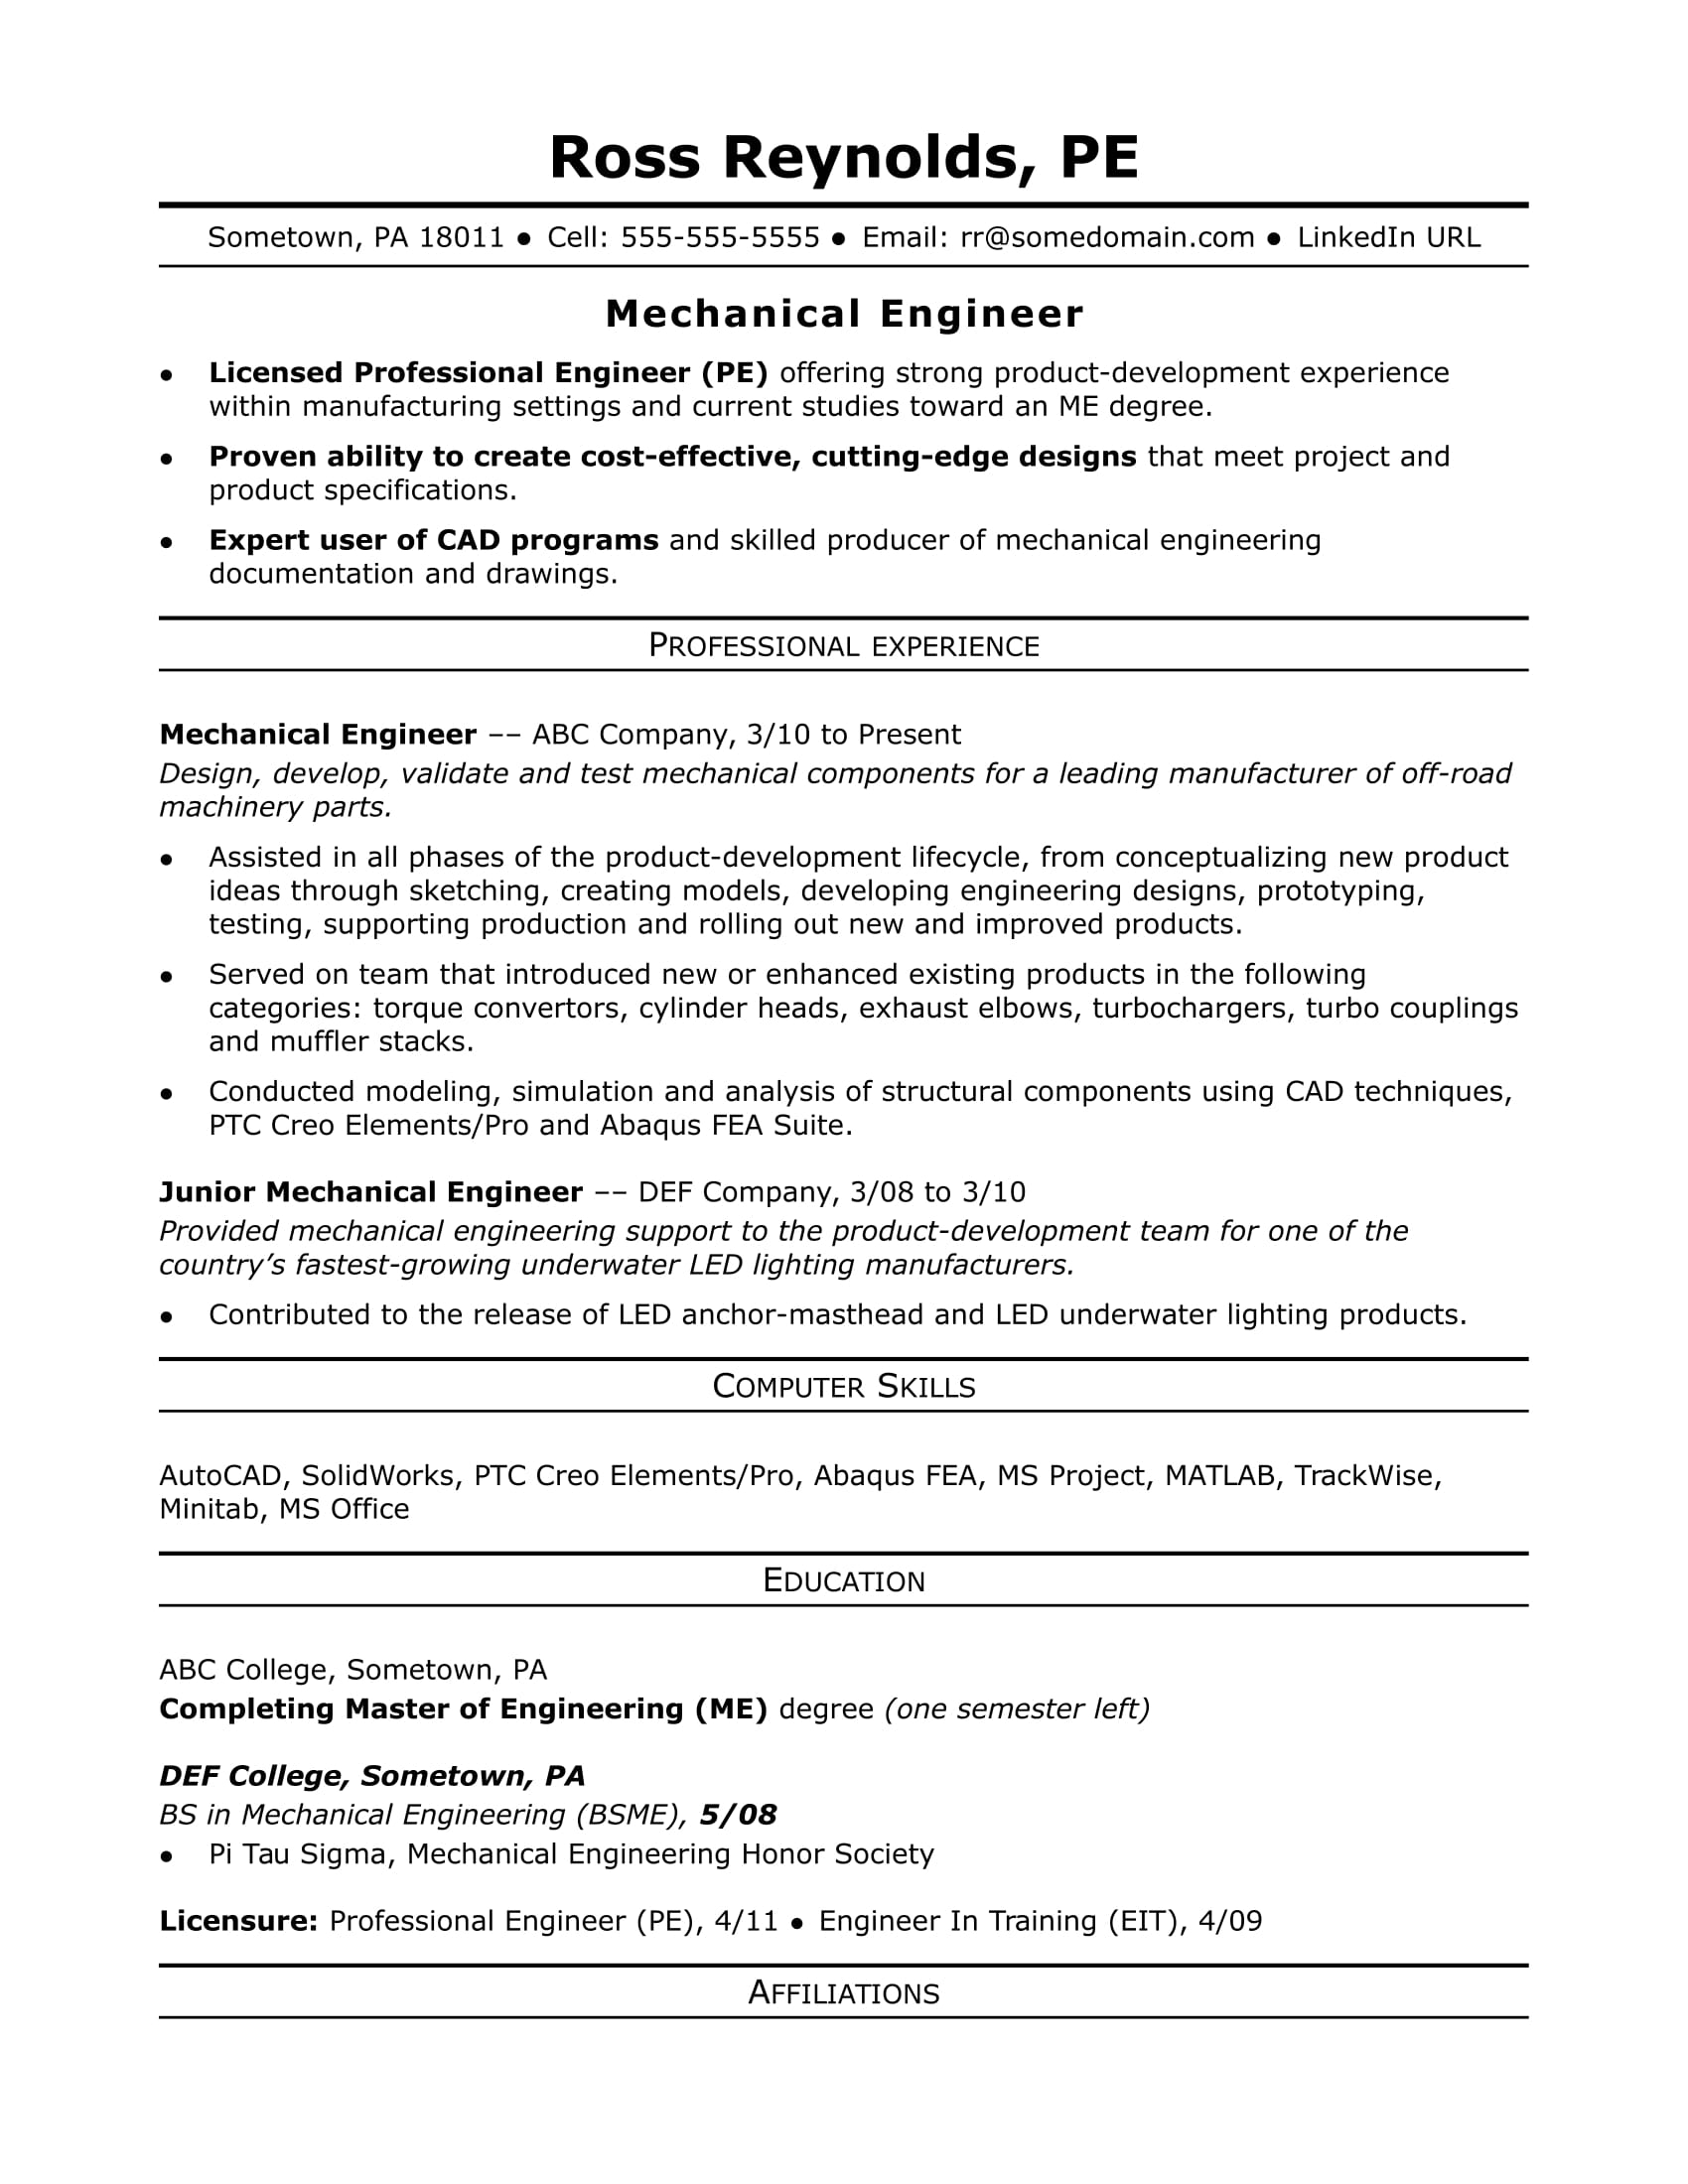 Exceptional Sample Resume For A Midlevel Mechanical Engineer Ideas Sample Mechanical Engineering Resume